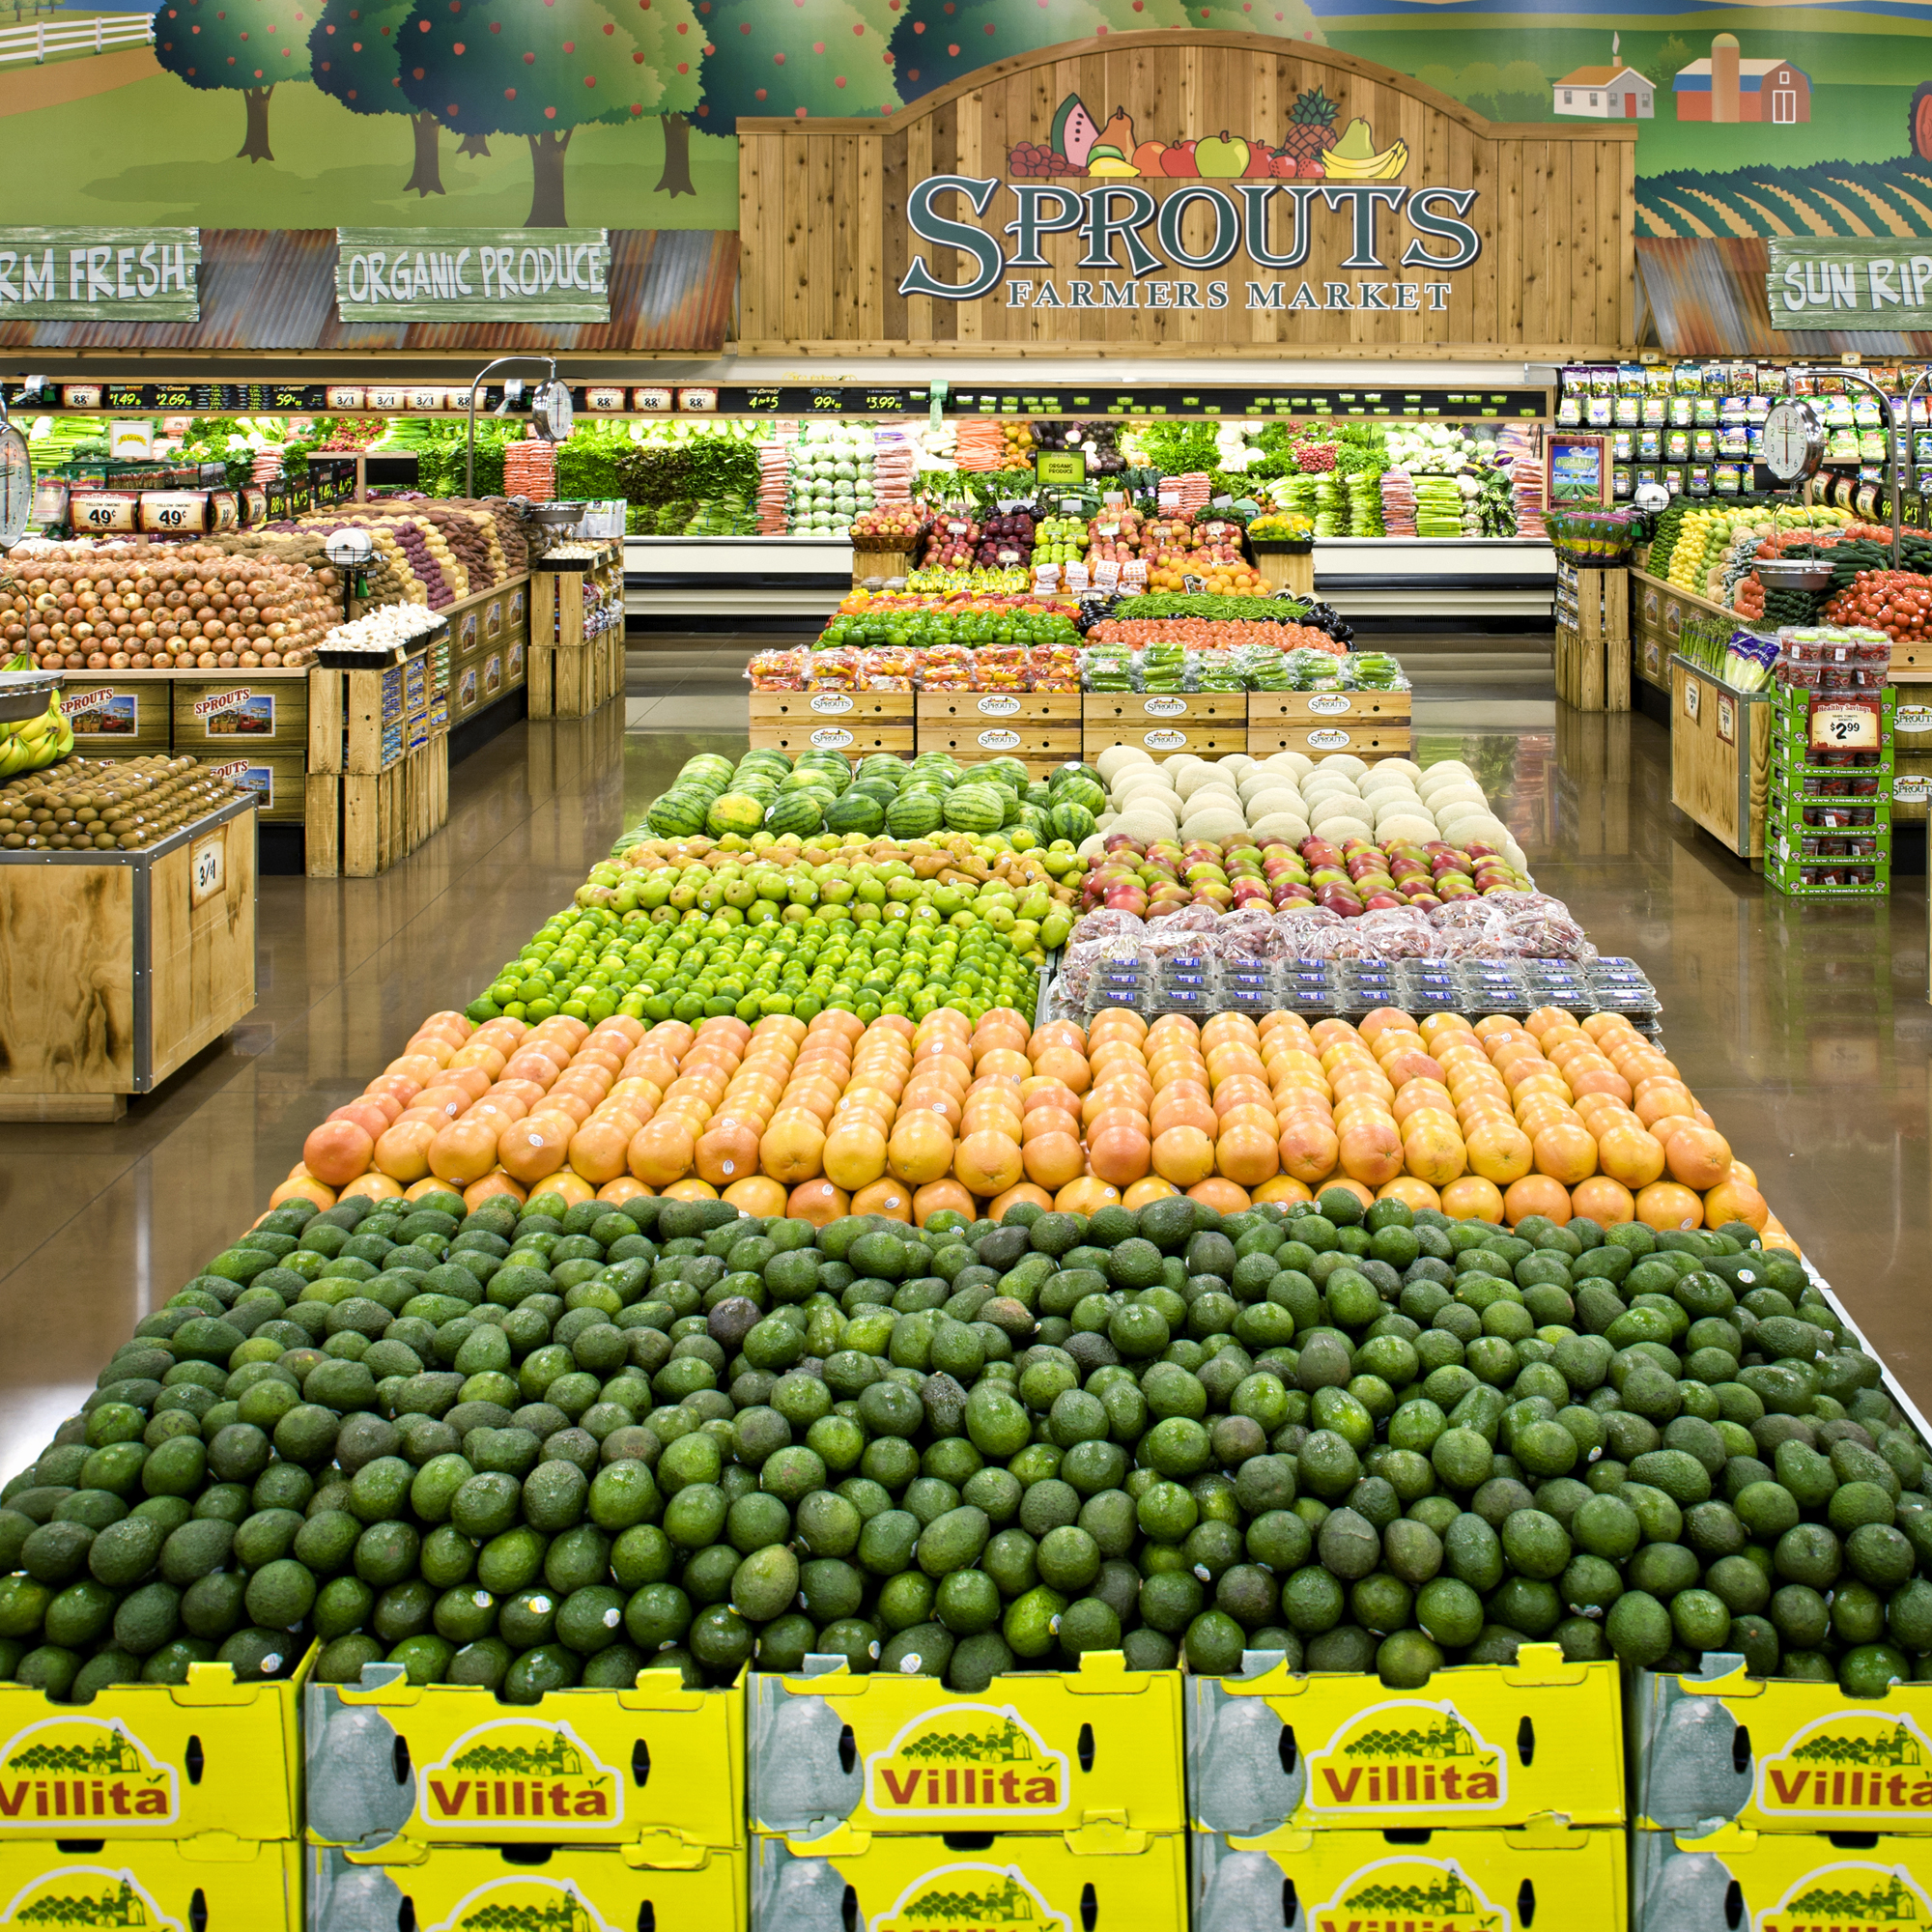 Amazon Prime Now to deliver fresh items from Sprouts in Austin